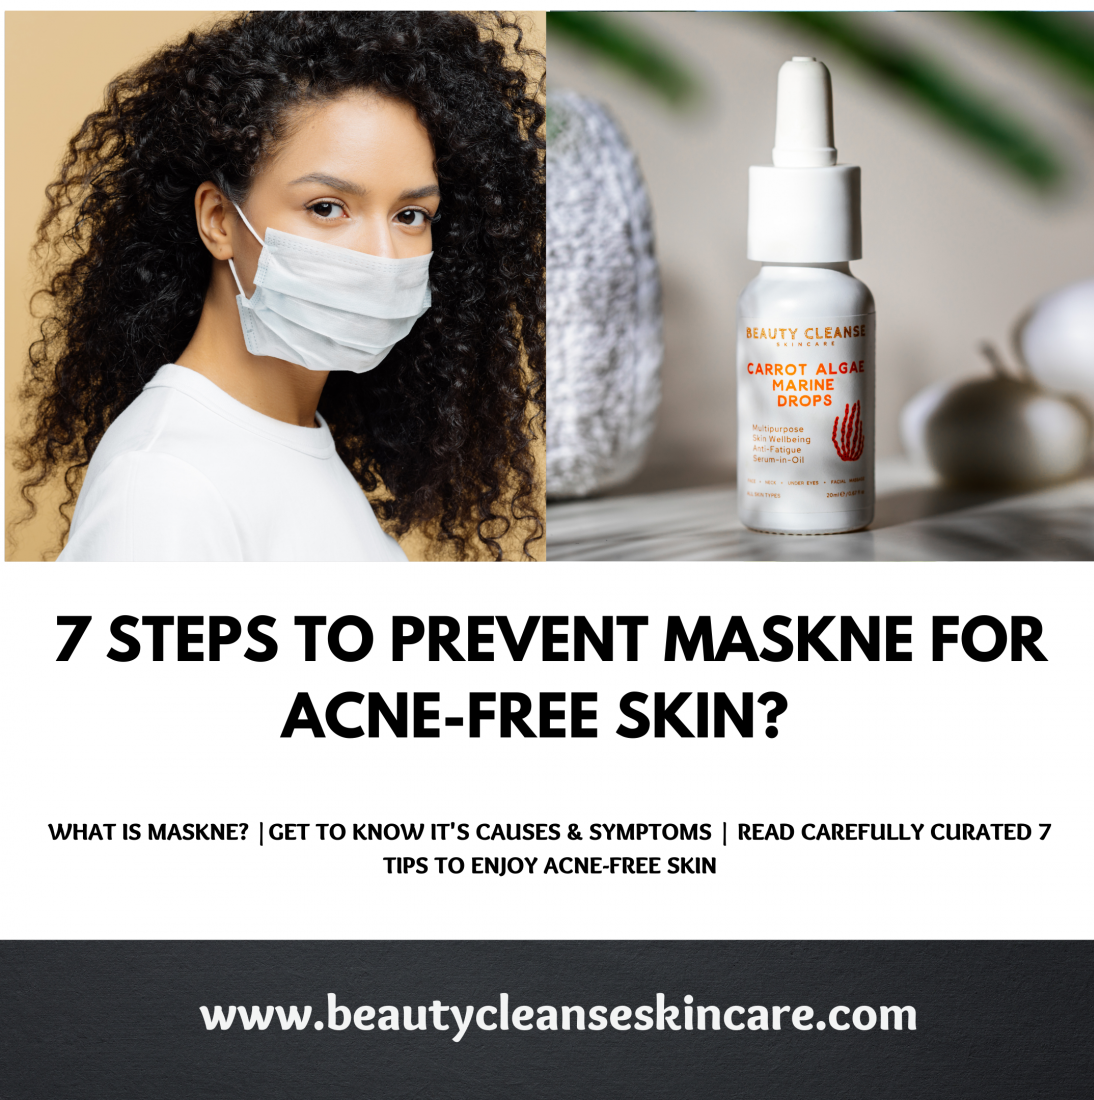 7 Steps to Prevent Maskne for Acne-Free Skin? Get to Know the Causes & Symptoms